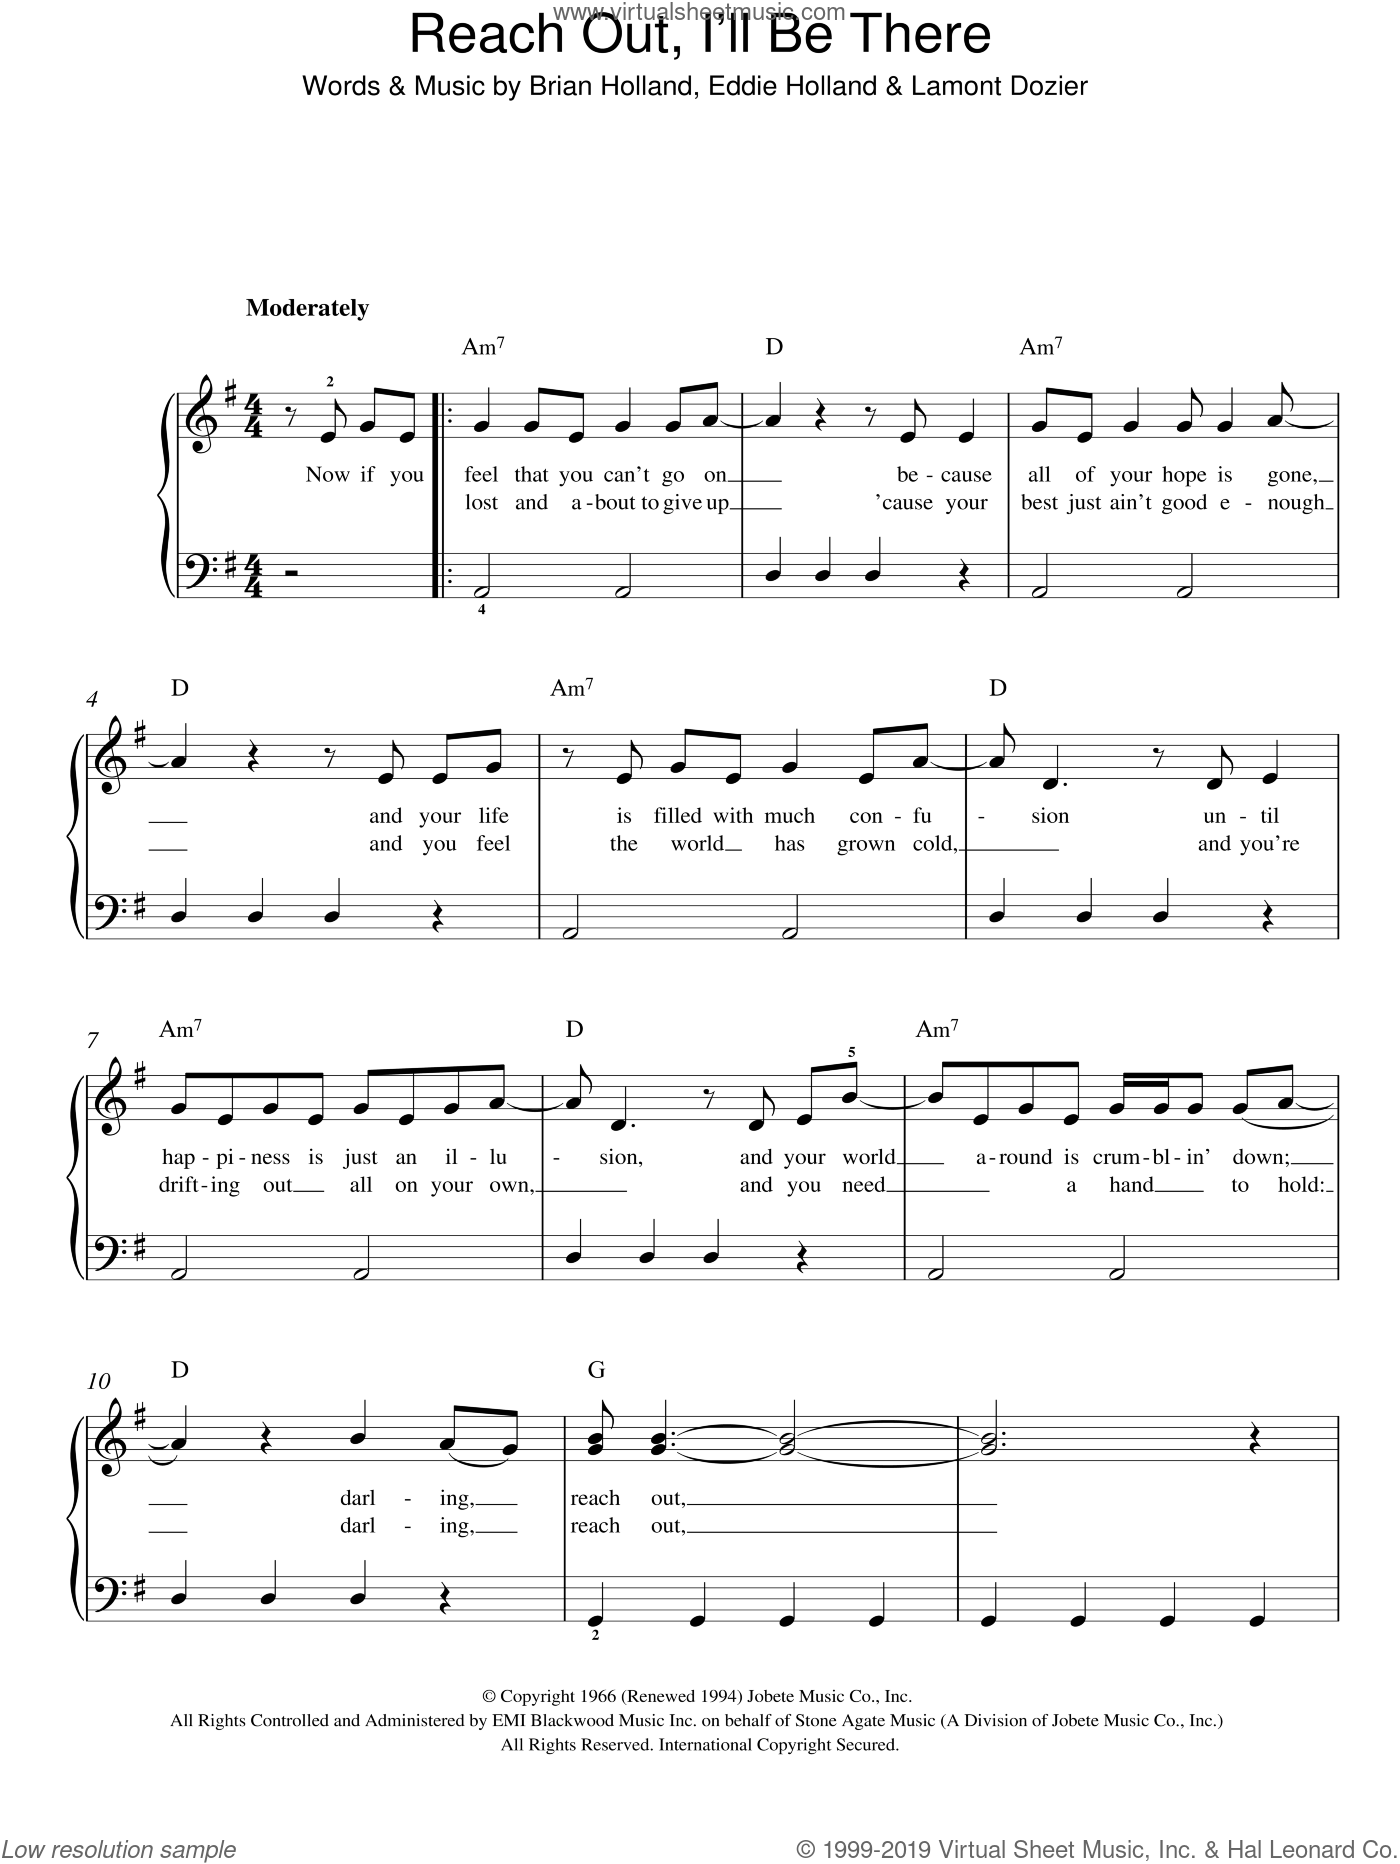 Reach Out, I'll Be There sheet music for piano solo by Lamont Dozier